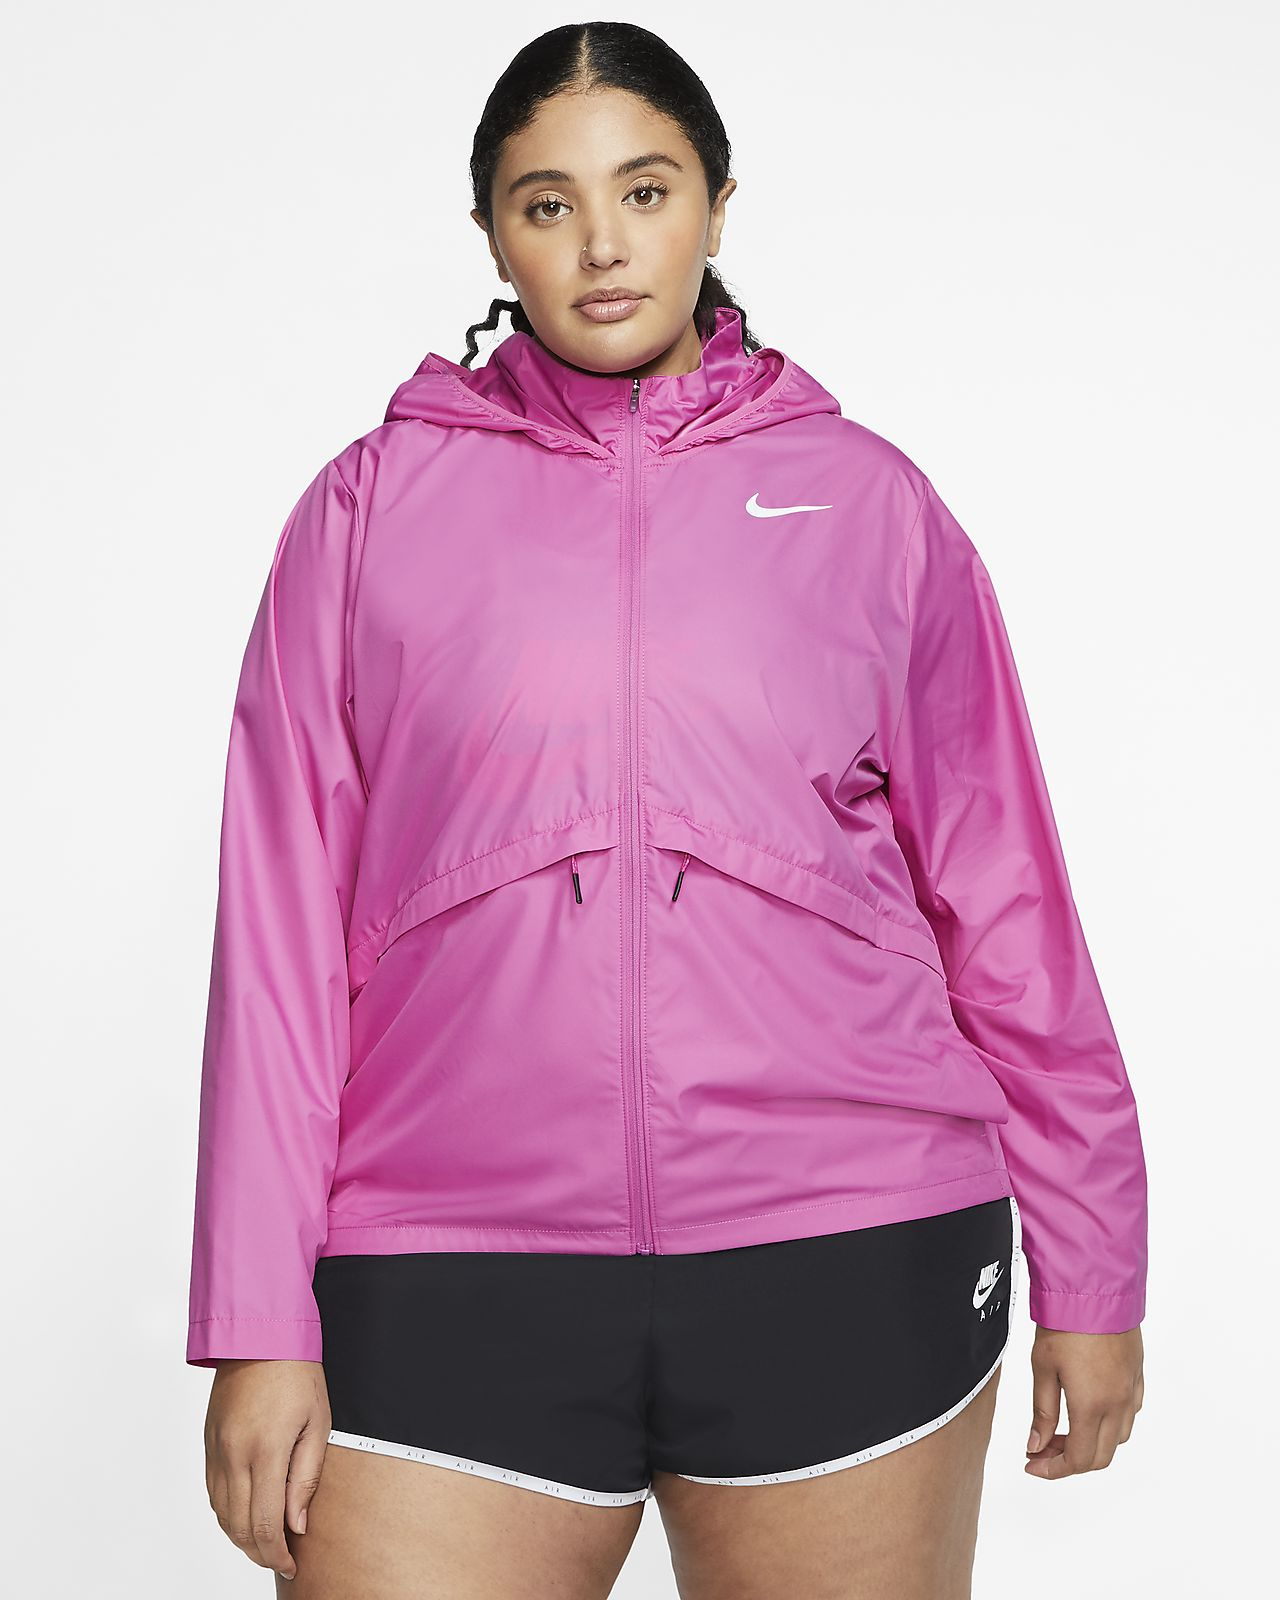 Nike Essential Women's Hooded Running Jacket (Plus Size)